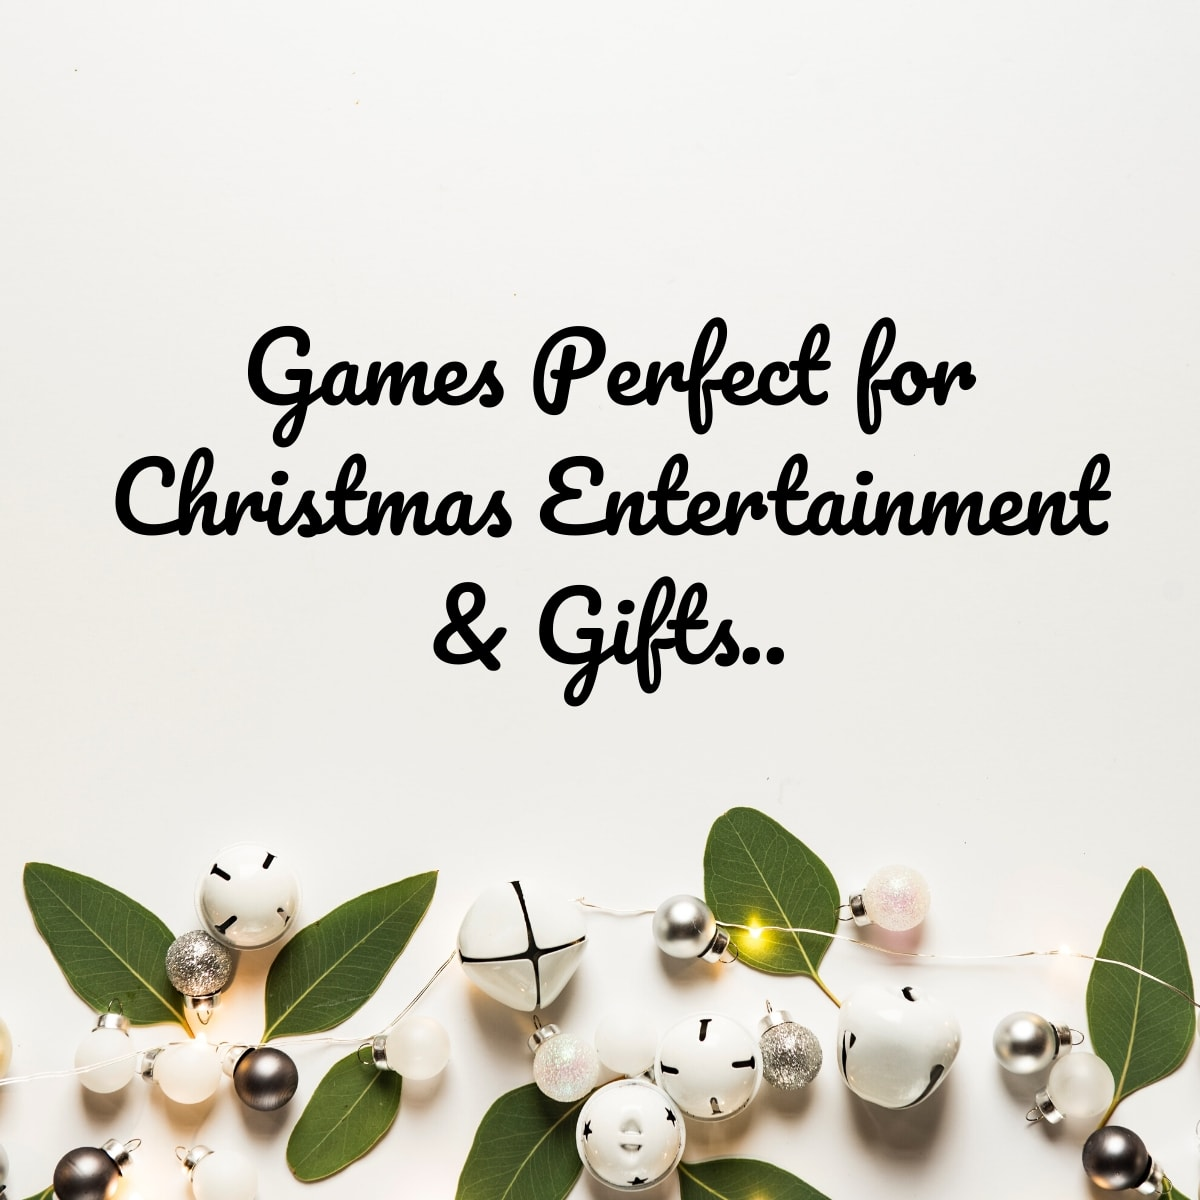 Games Perfect for Christmas Entertainment & Gifts